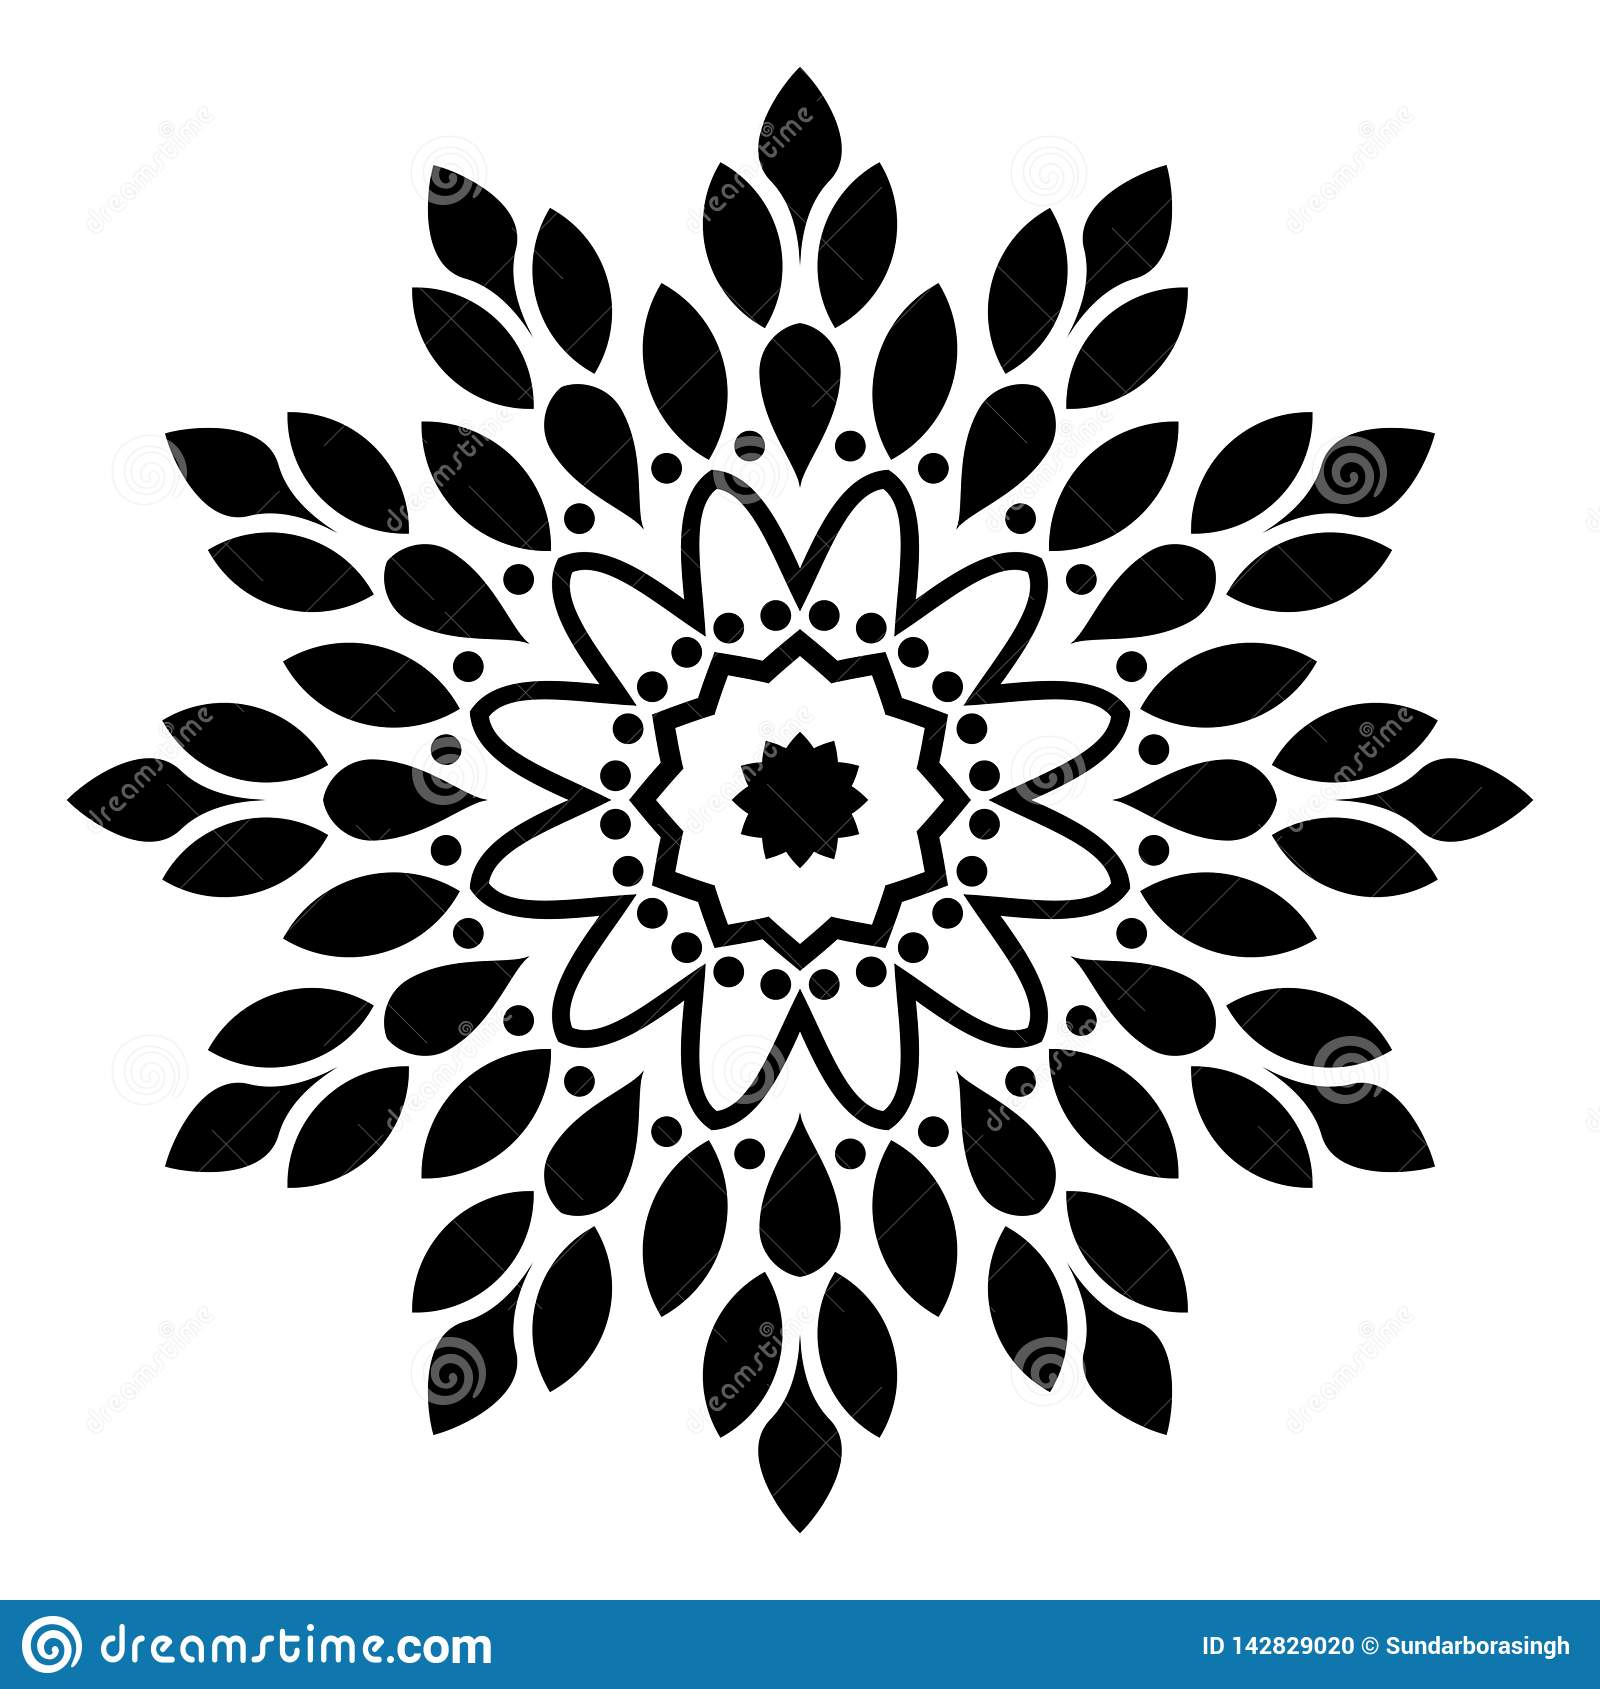 Mandala Illustration Swirl, en el fondo blanco